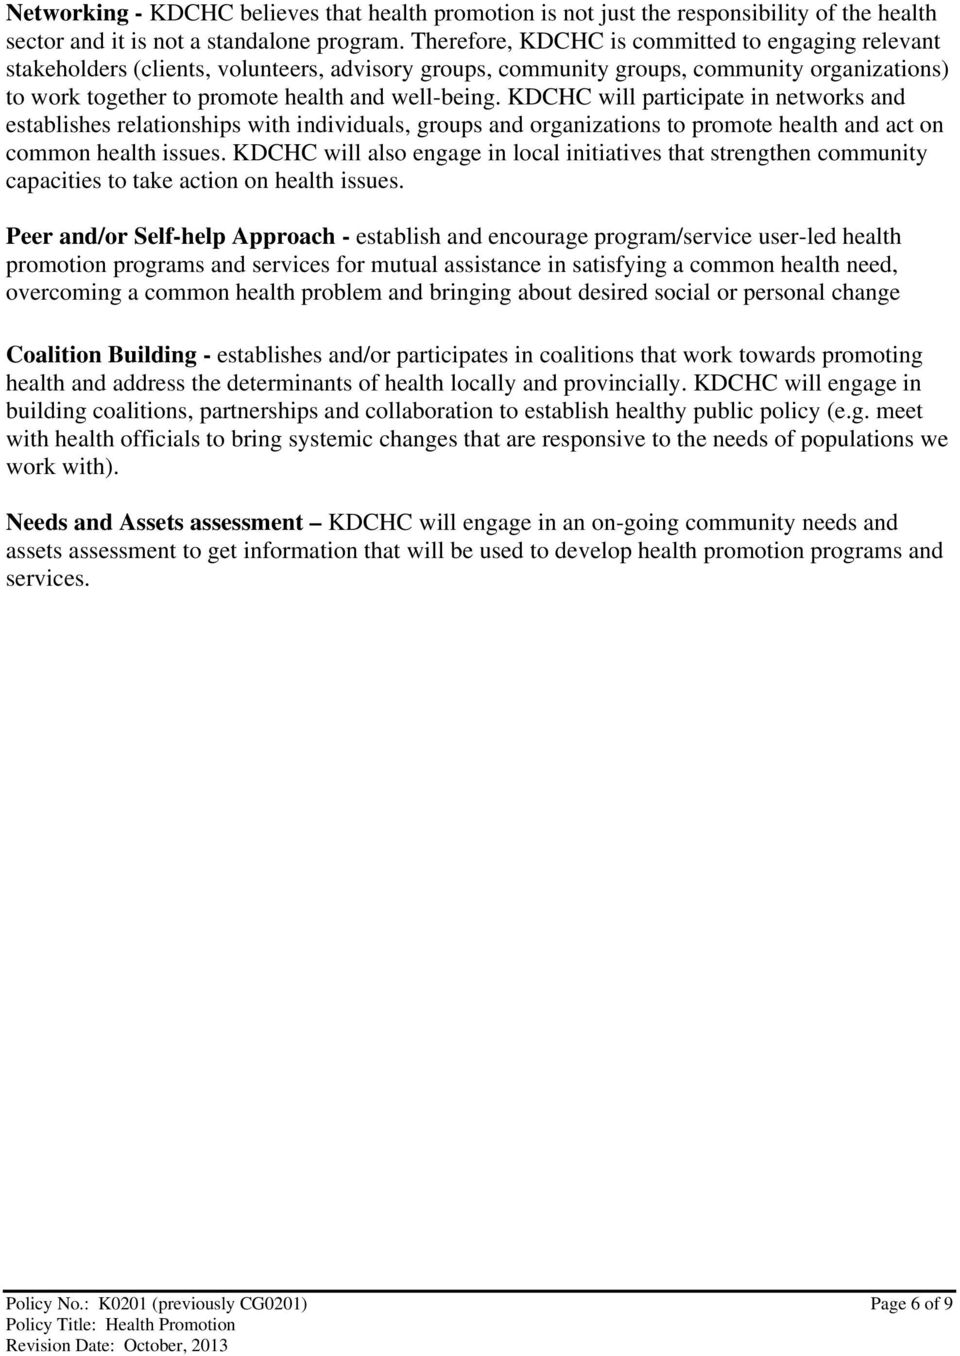 KDCHC will participate in networks and establishes relationships with individuals, groups and organizations to promote health and act on common health issues.